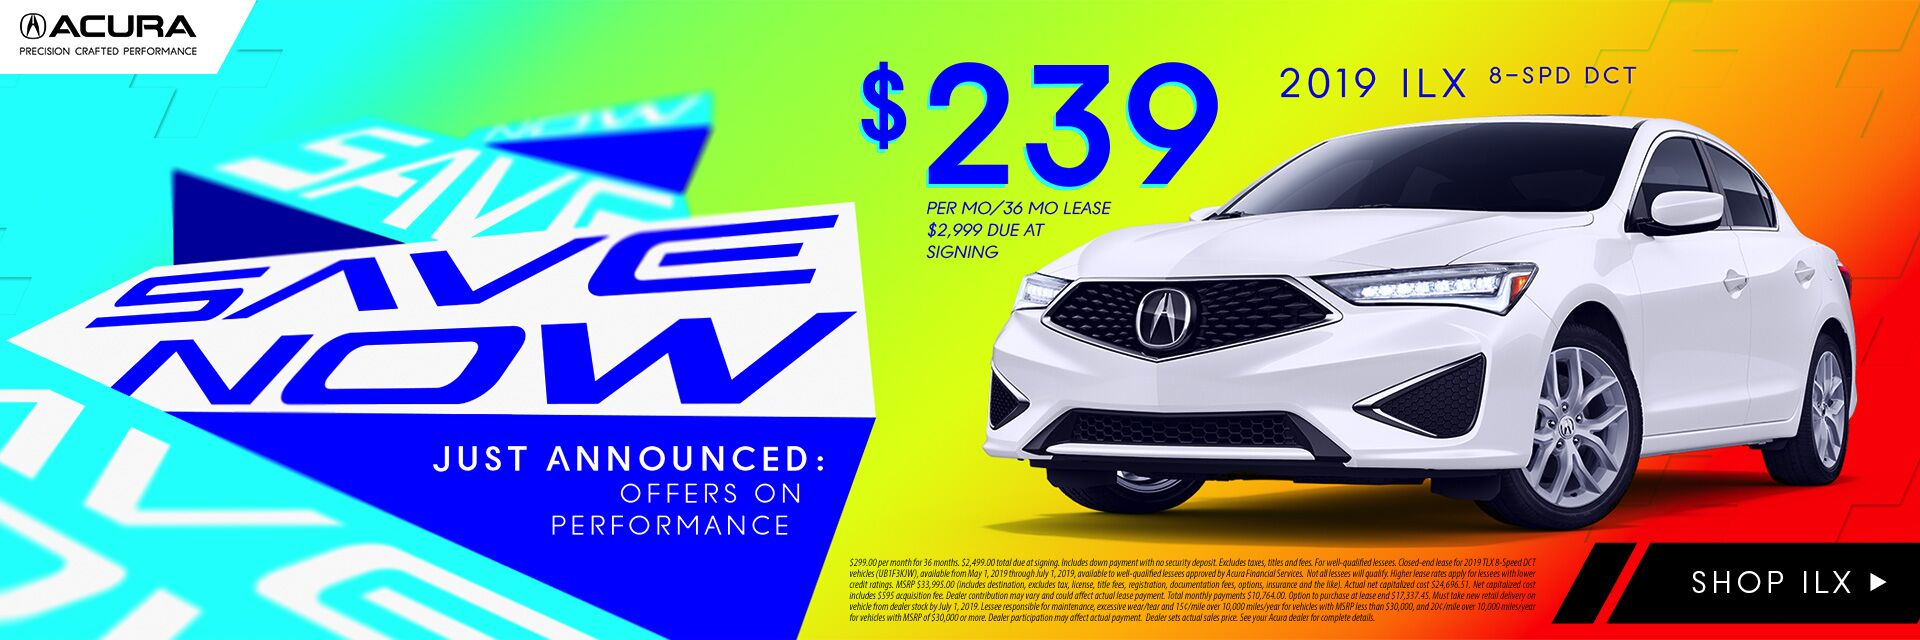 2019 ILX Incentives at Acura of Modesto